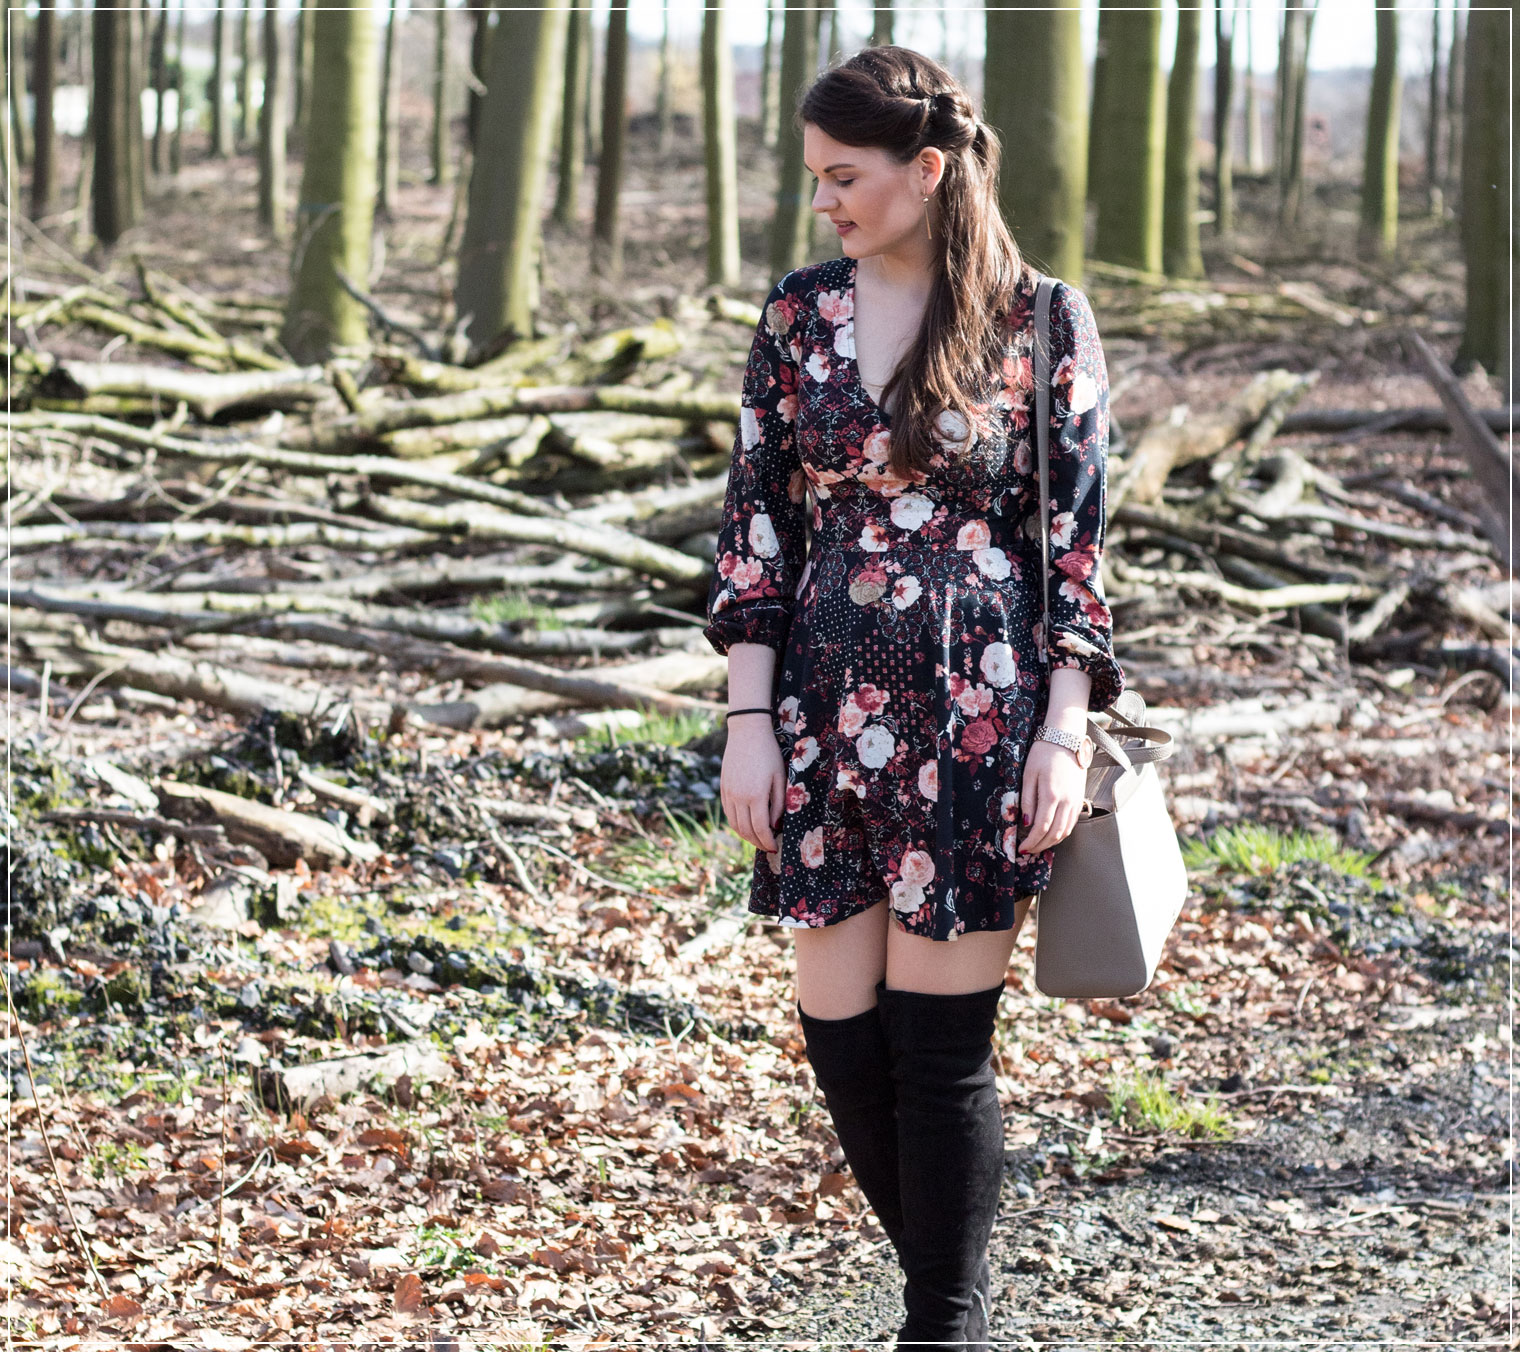 Herbsttrends 2018, Herbstmode, Herbstoutfit, Autumnstyle, Fall 2018, Modetrends, Blogger, Fashionblogger, Ruhrgebiet